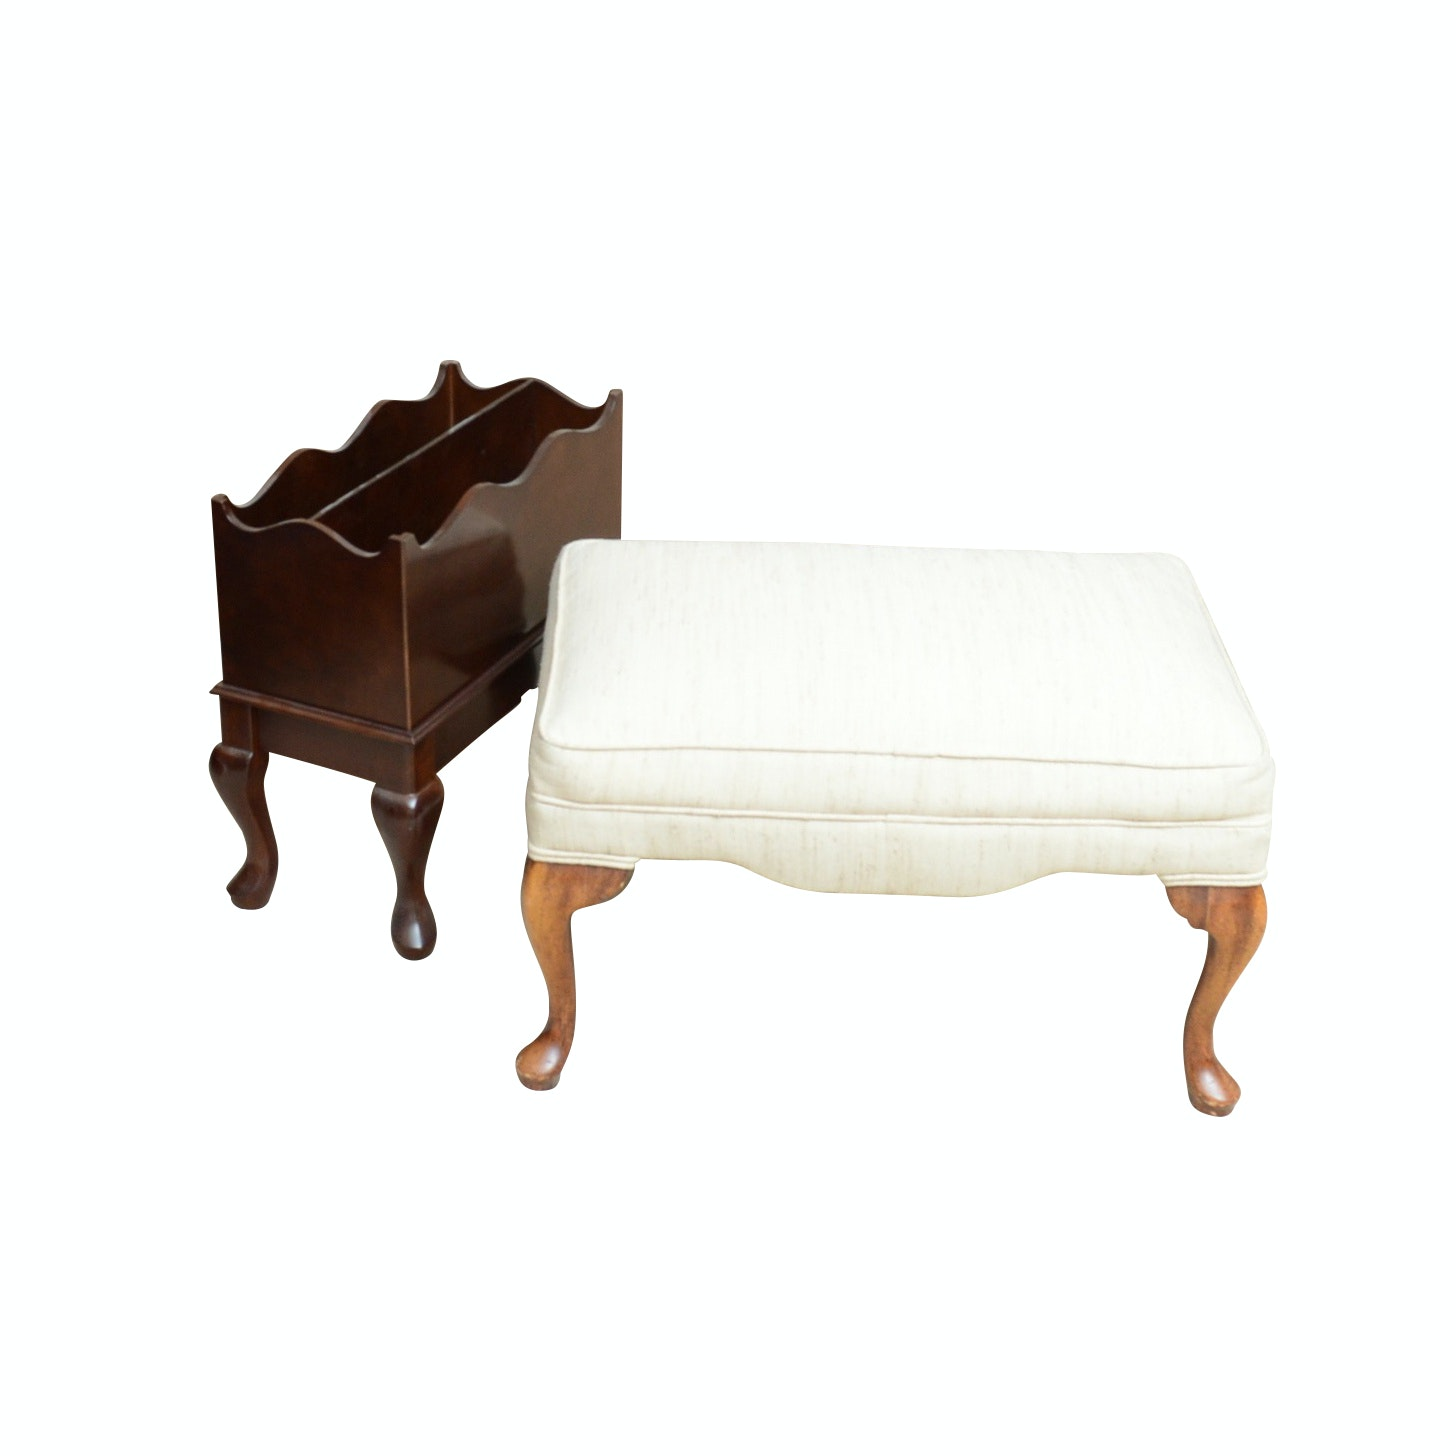 The Bombay Company Magazine Rack and Upholstered Footstool